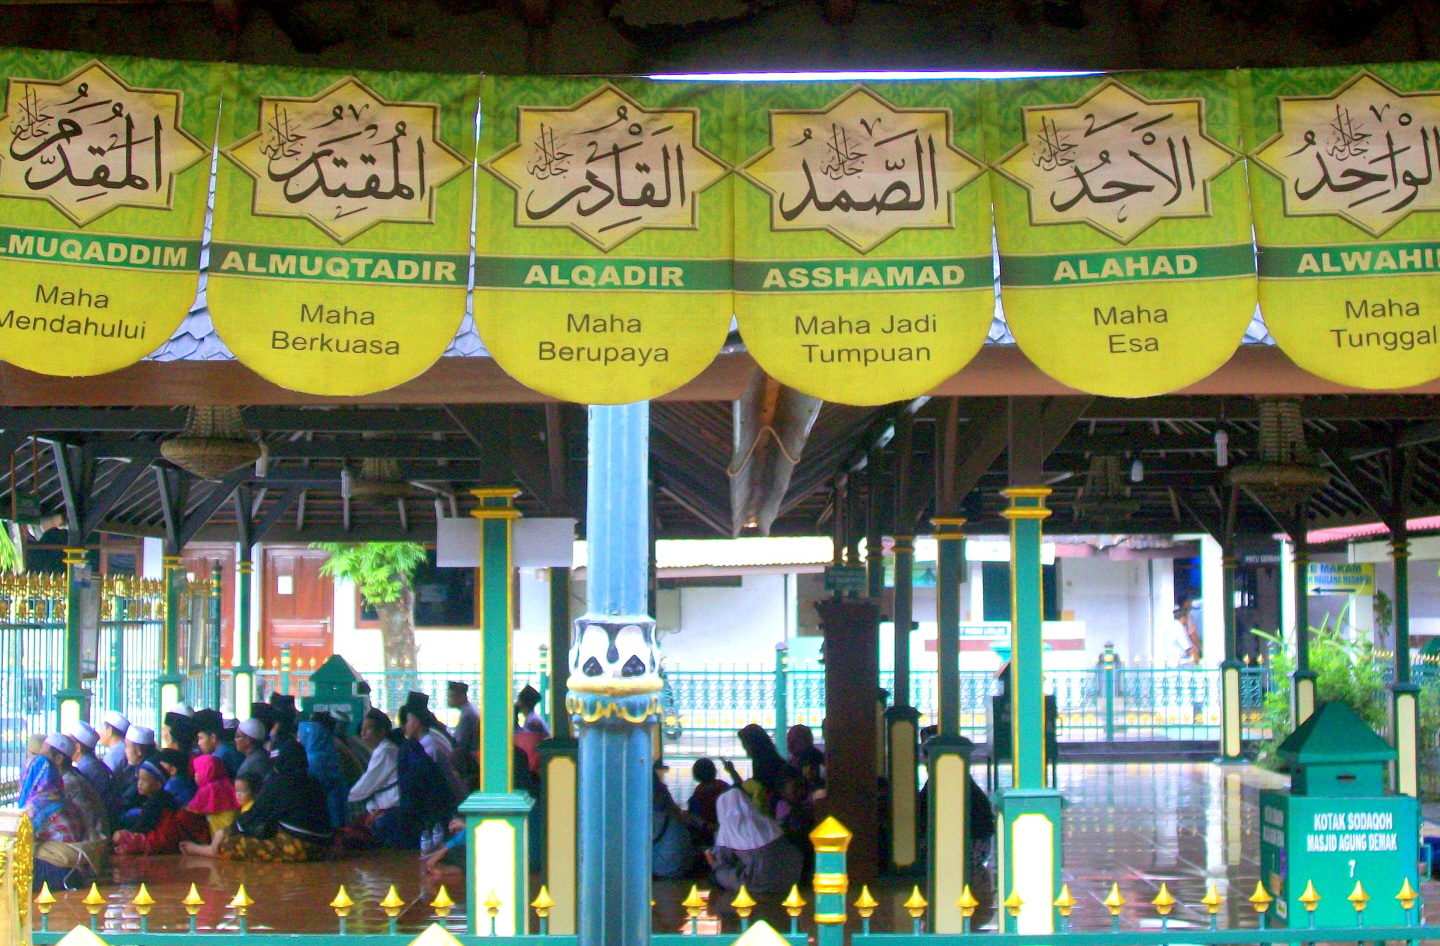 The 99 Beautiful Names of Allah - Strung in a Portico at the Agung Demak Masjid